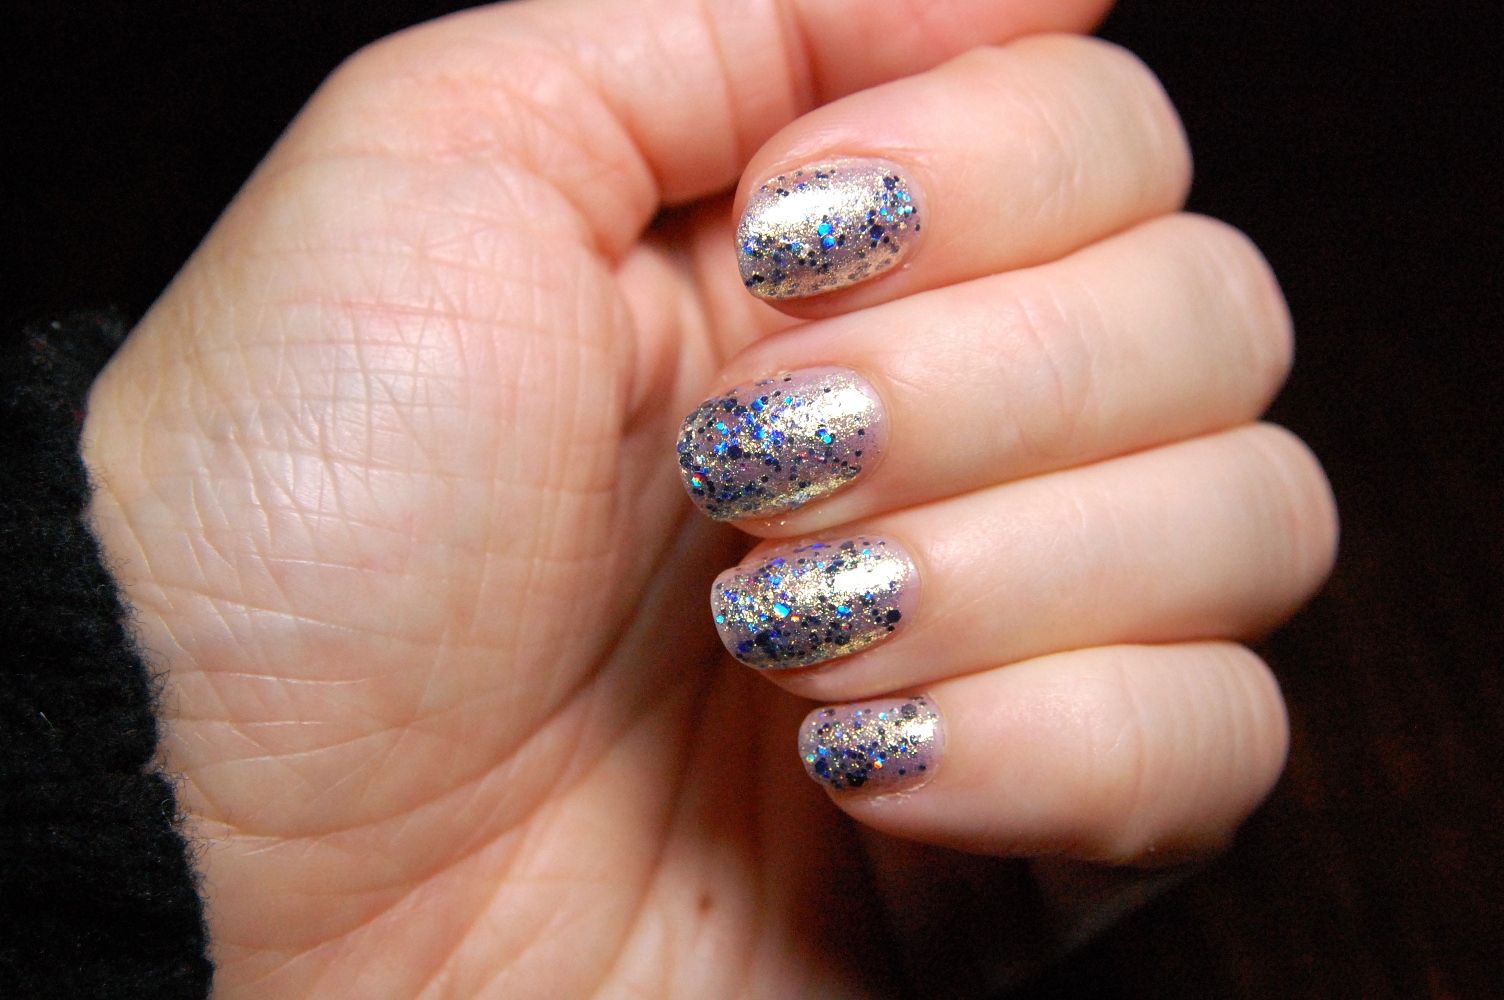 Essie Encrusted Treasures holiday nail polish in On a Silver Platter ...